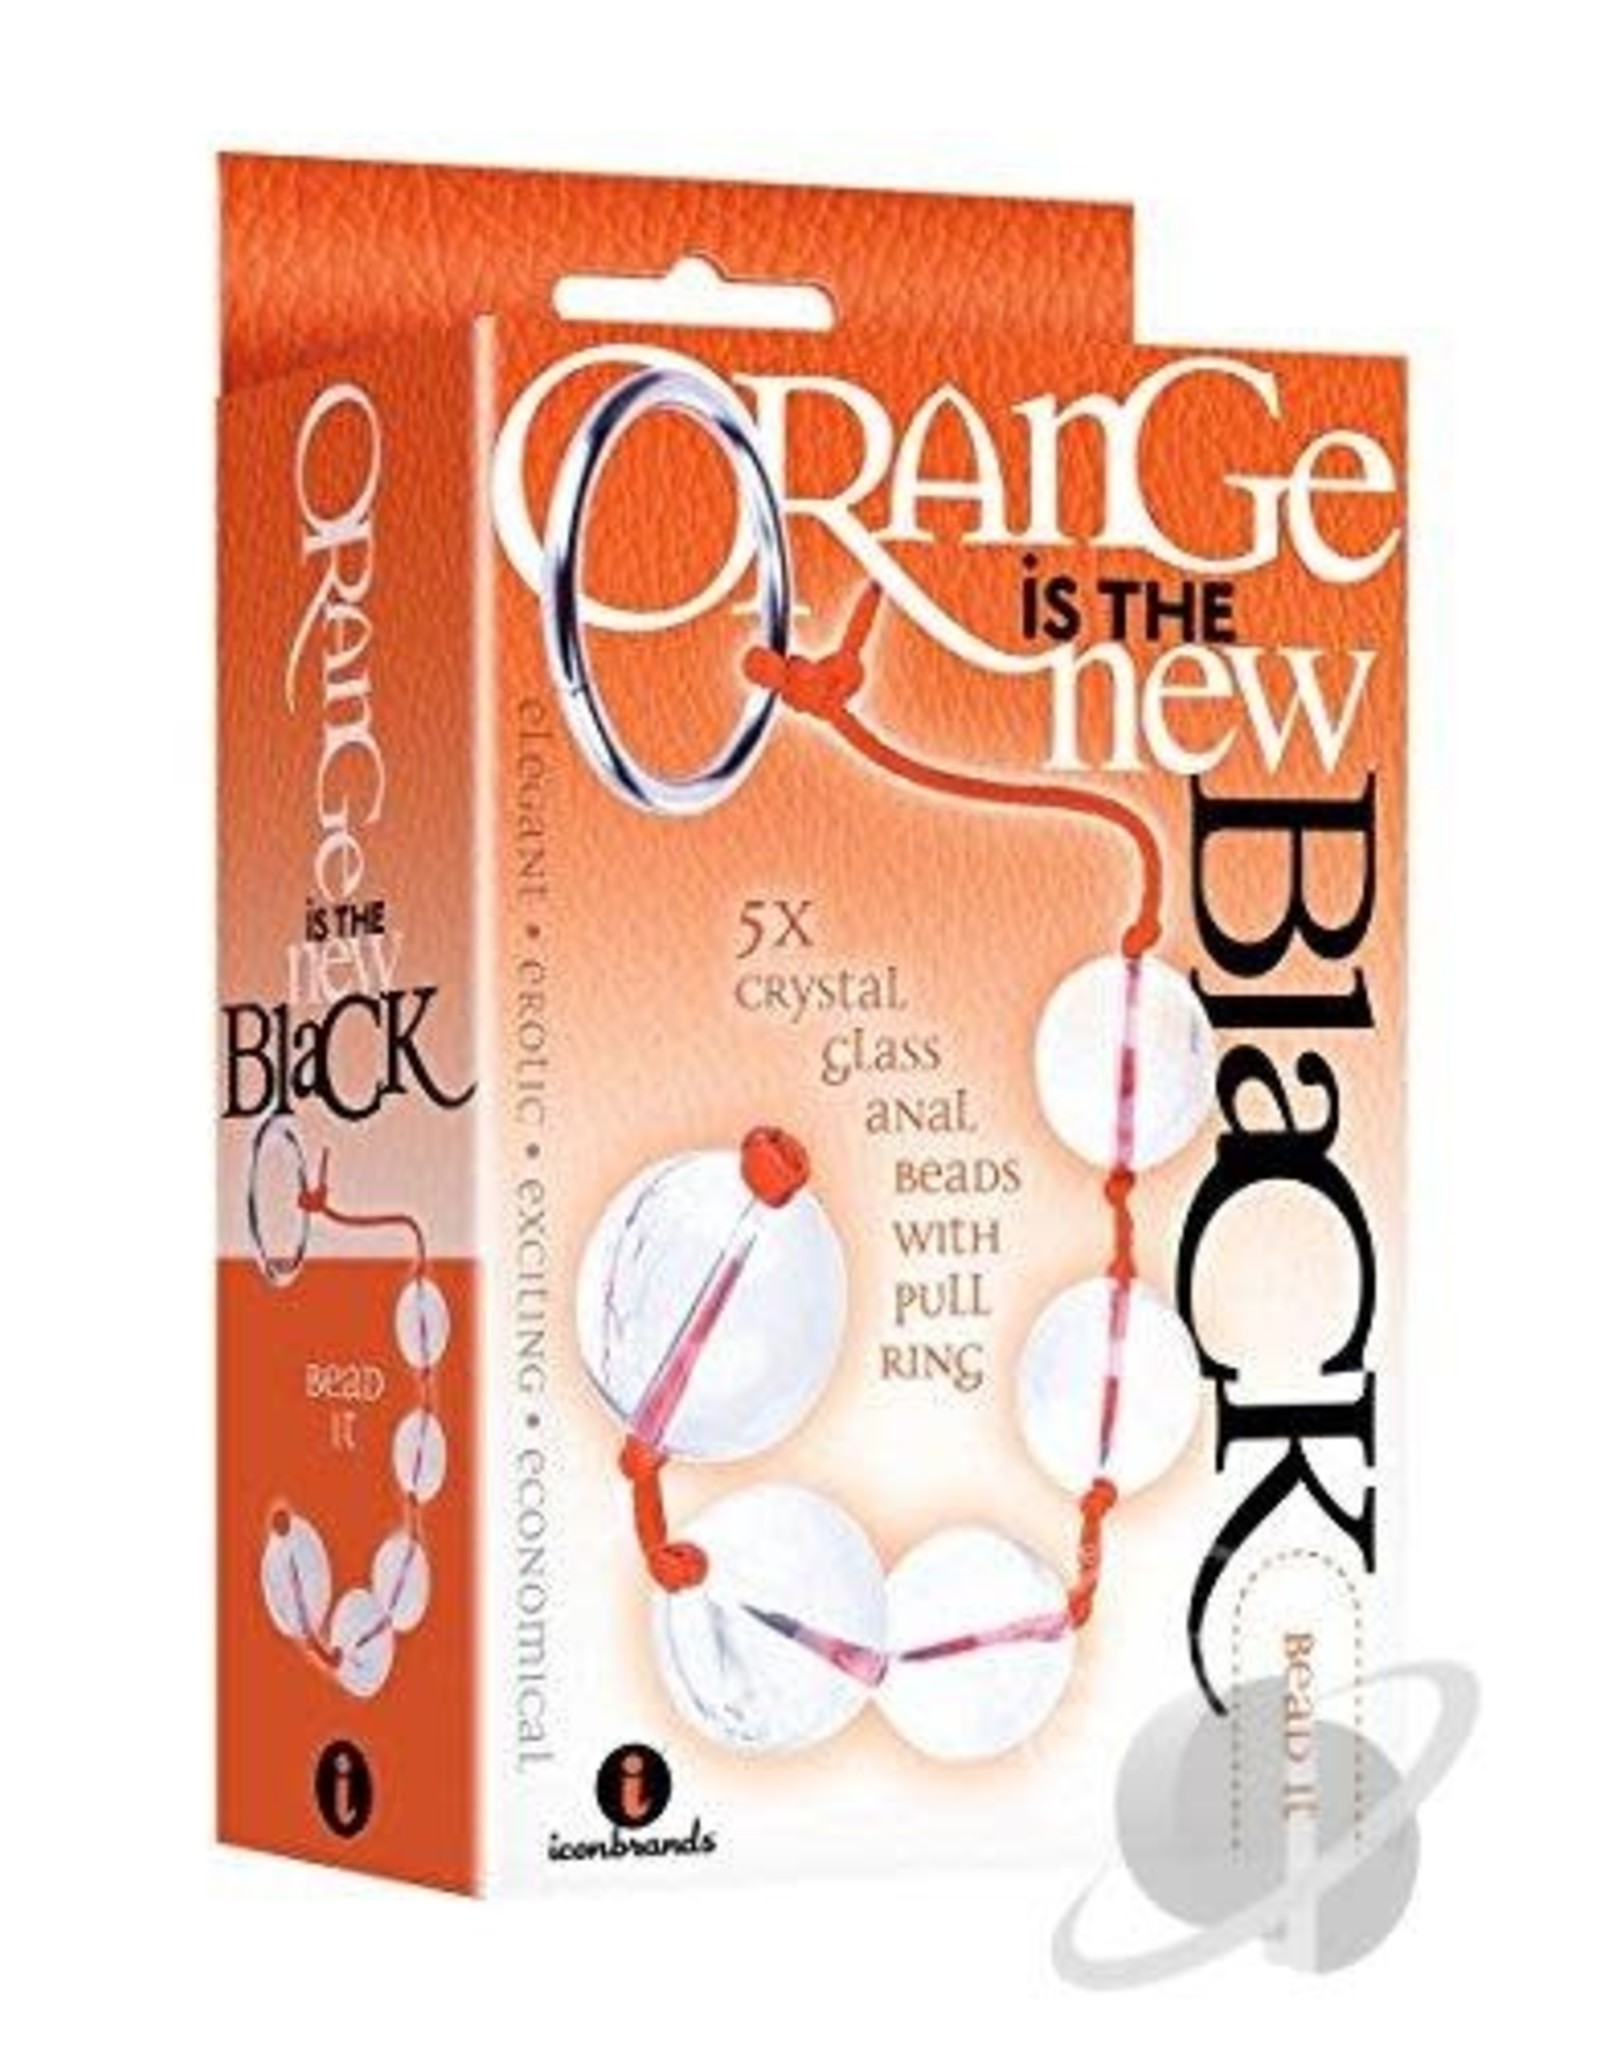 Orange is the New Black - 5 Crystal Anal Beads